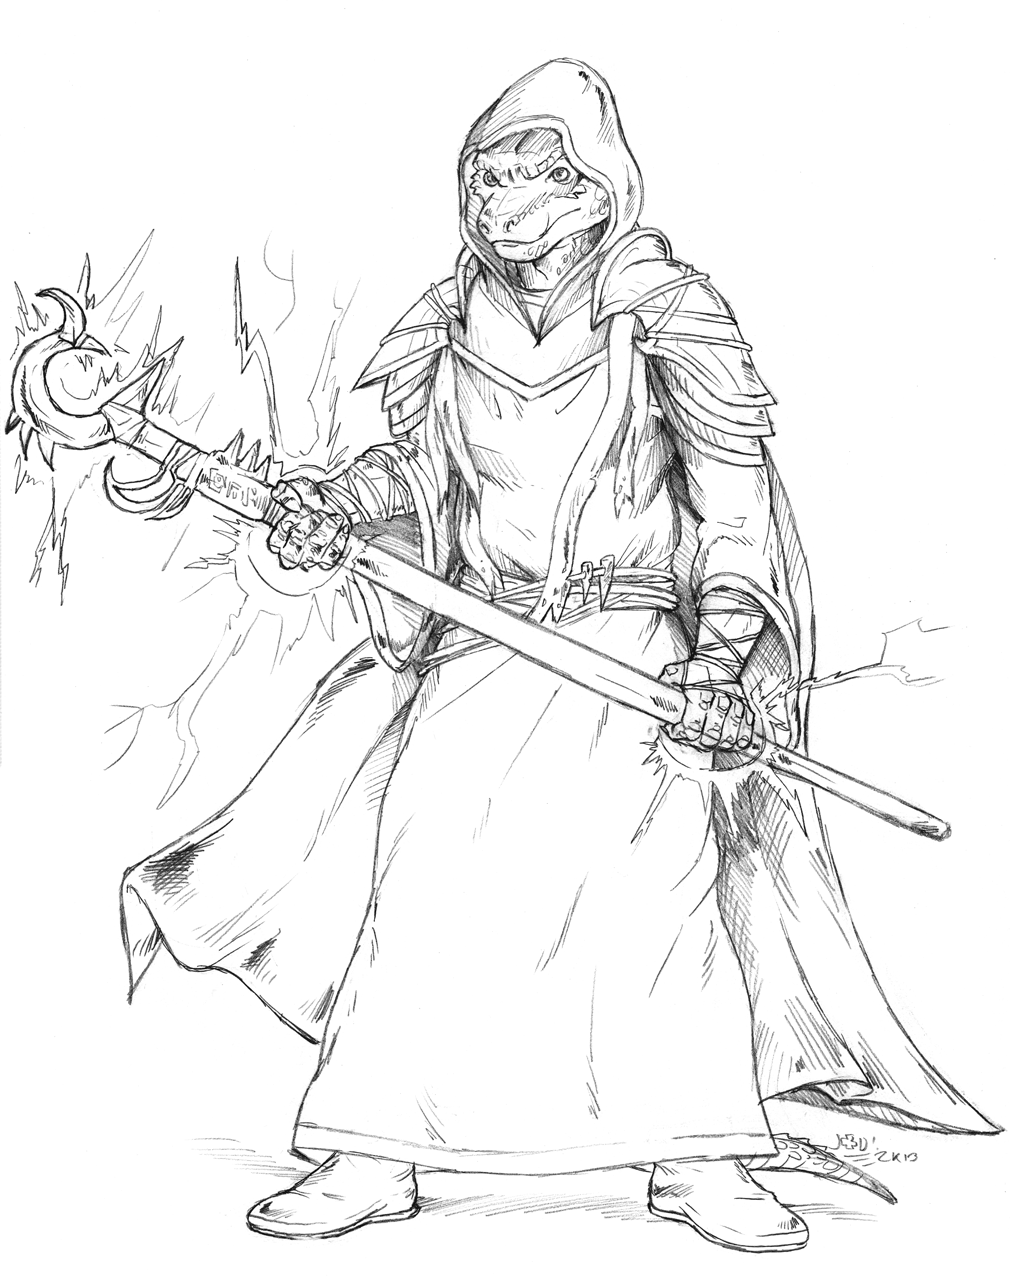 Commission (Sketch) - So full of mage